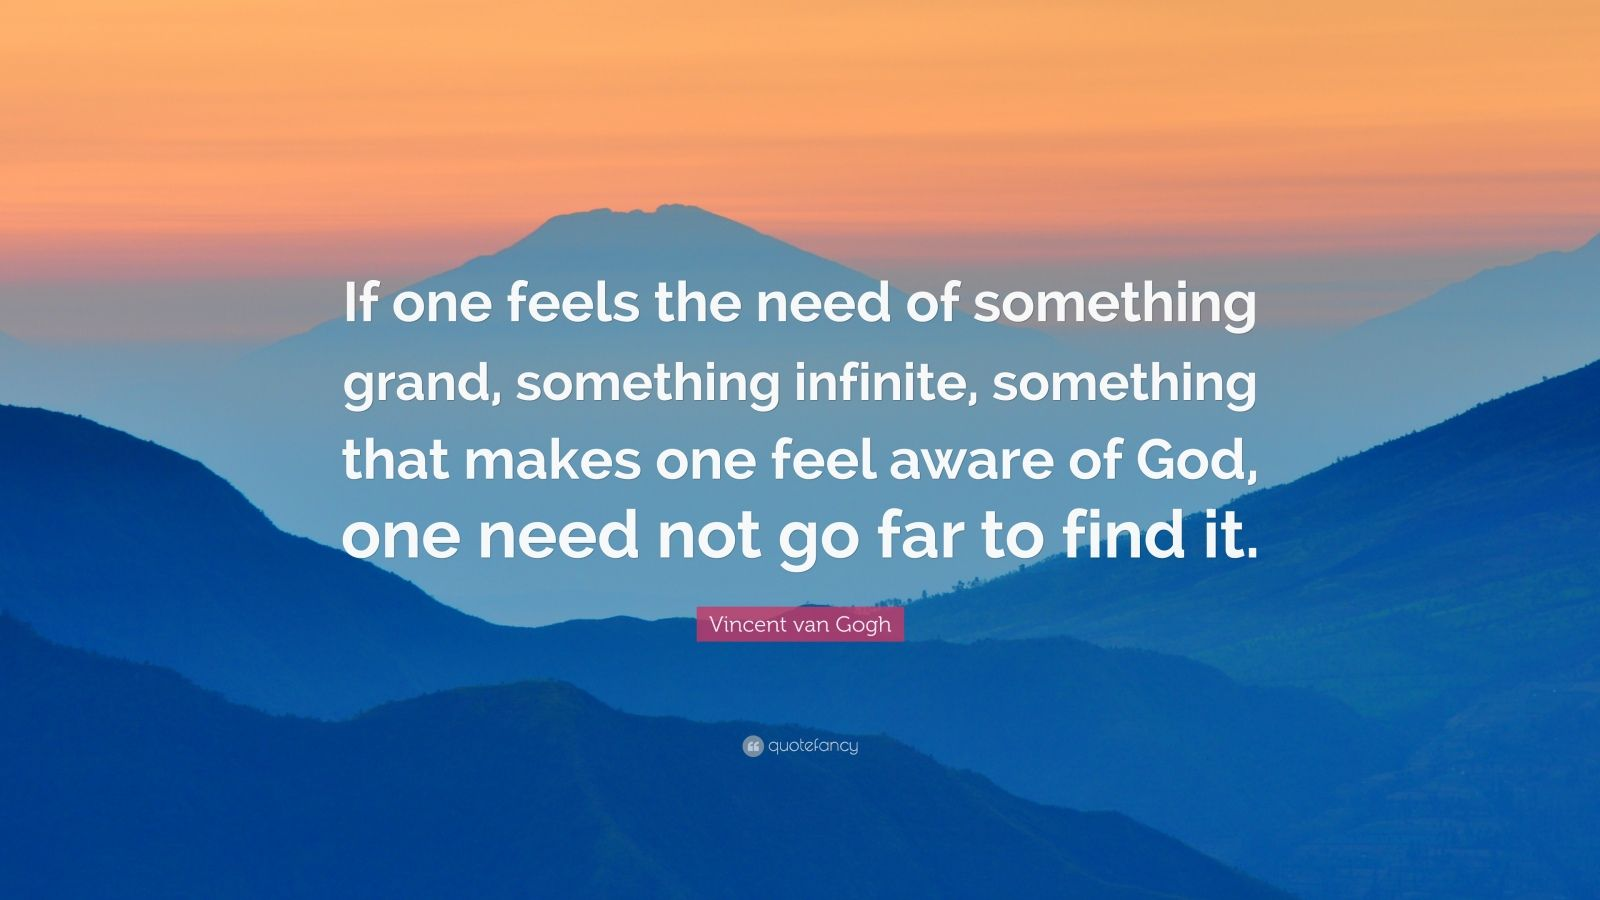 """Vincent van Gogh Quote: """"If one feels the need of something grand, something infinite, something that makes one feel aware of God, one need not go far to find it."""""""